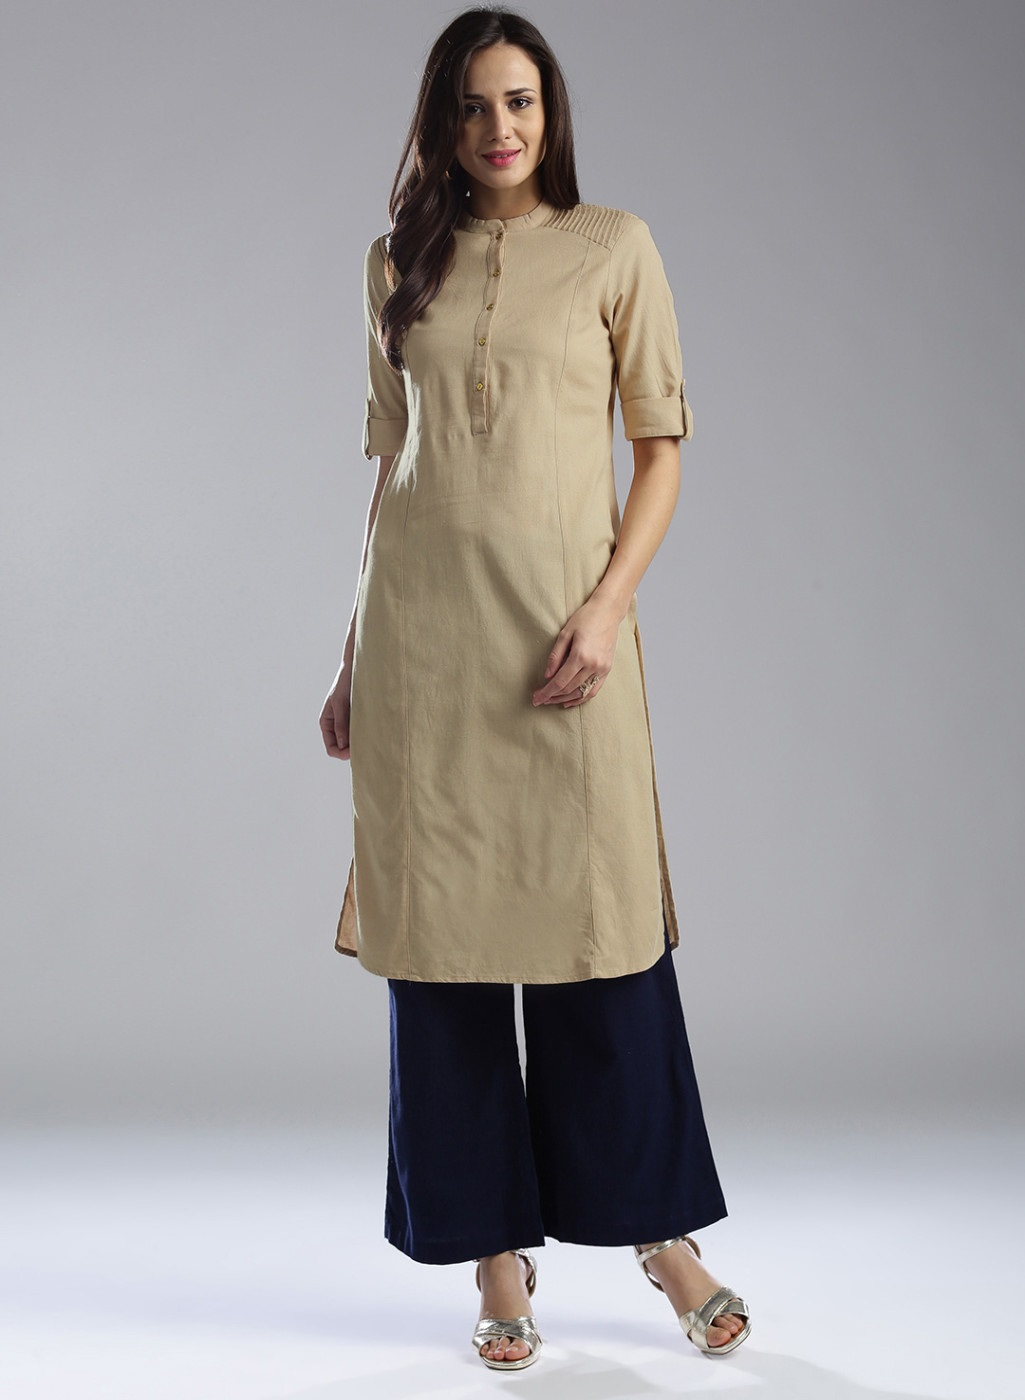 Women's New Stylish Designer Beige Rayon Kurtis With Plazzo